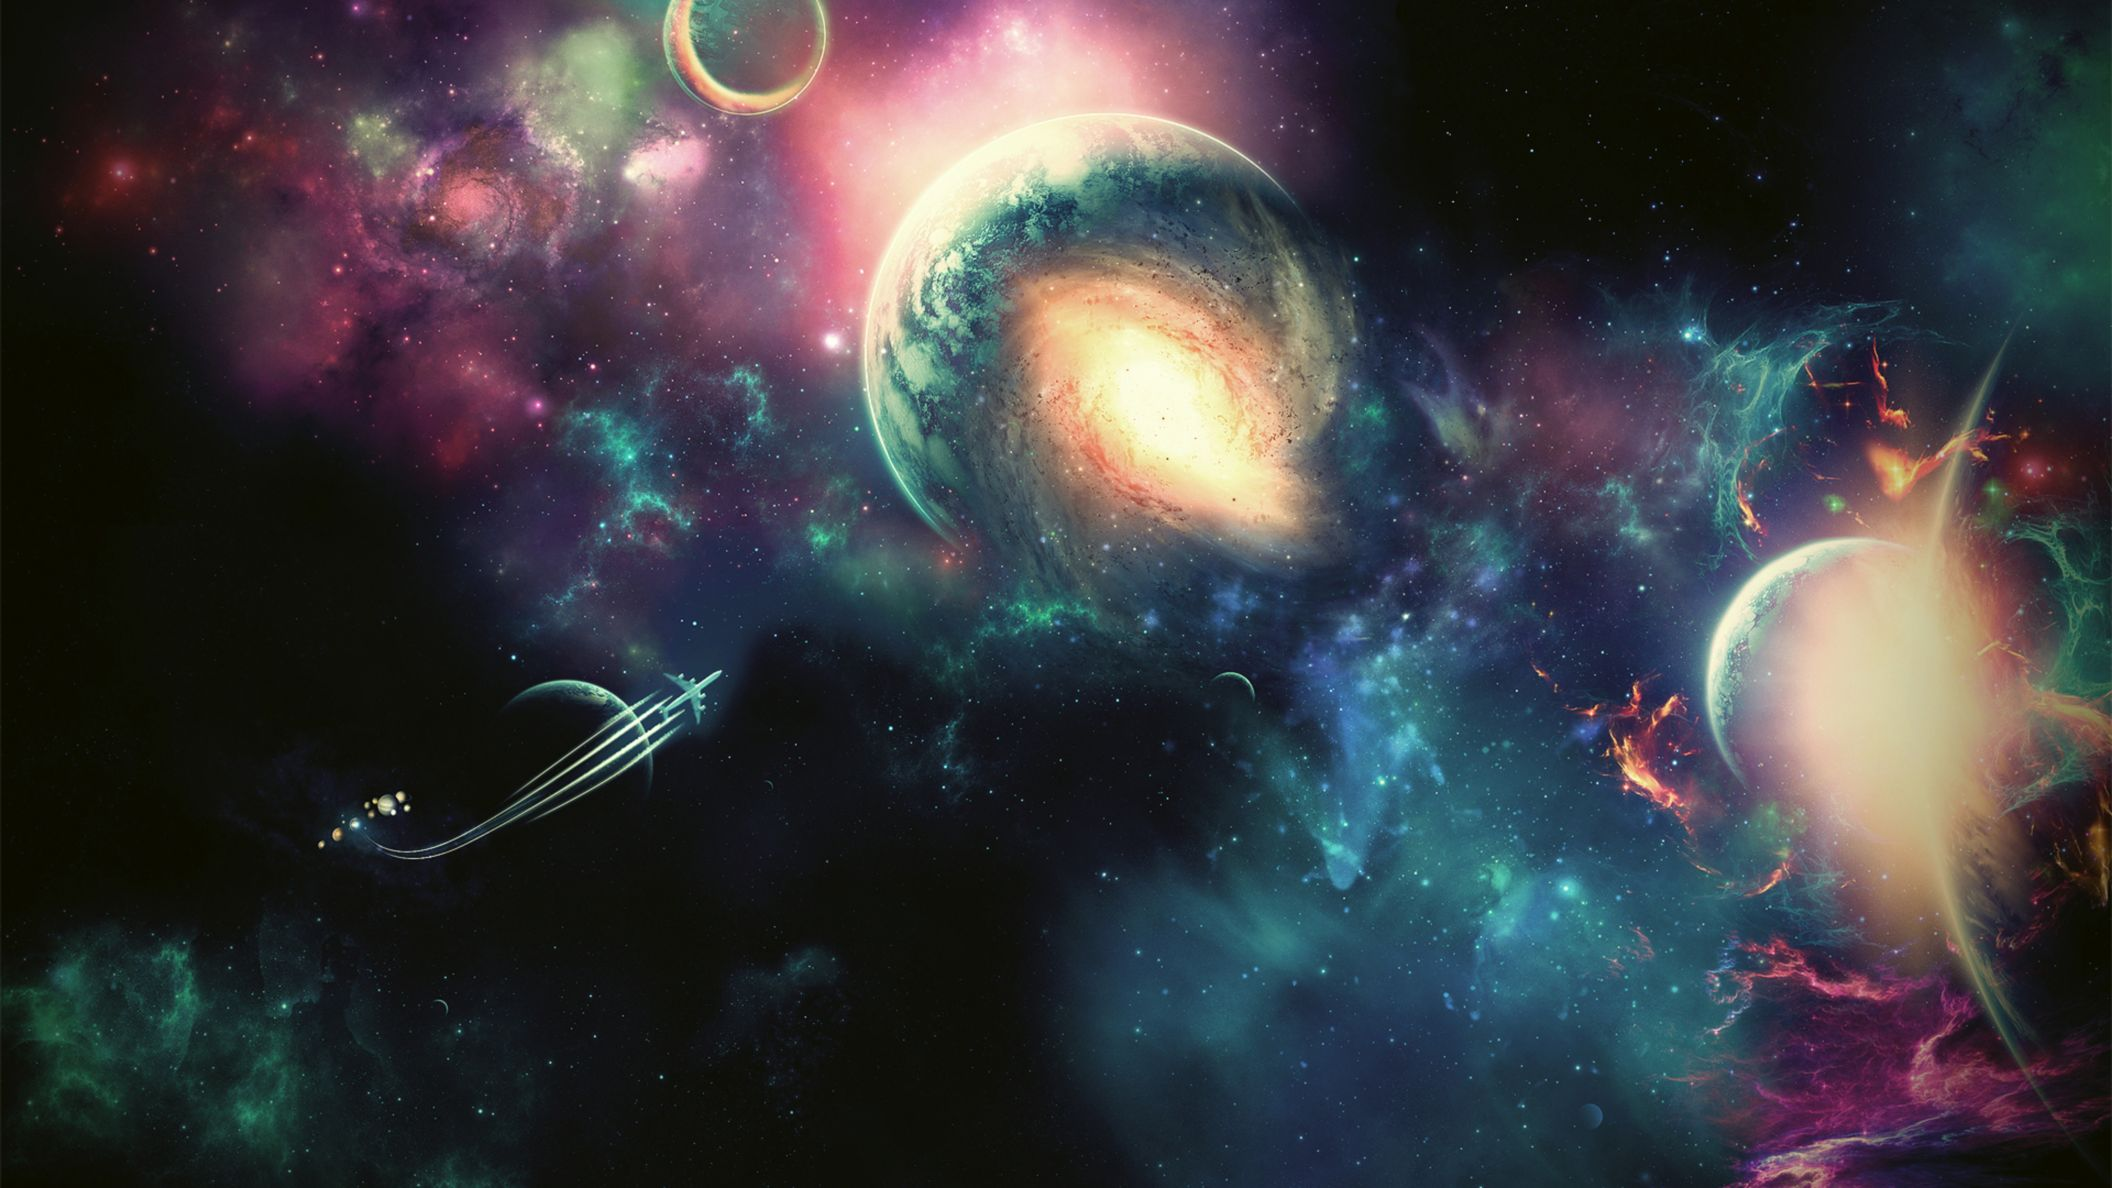 Download free HD Space Art HD 1080p Wallpaper, image